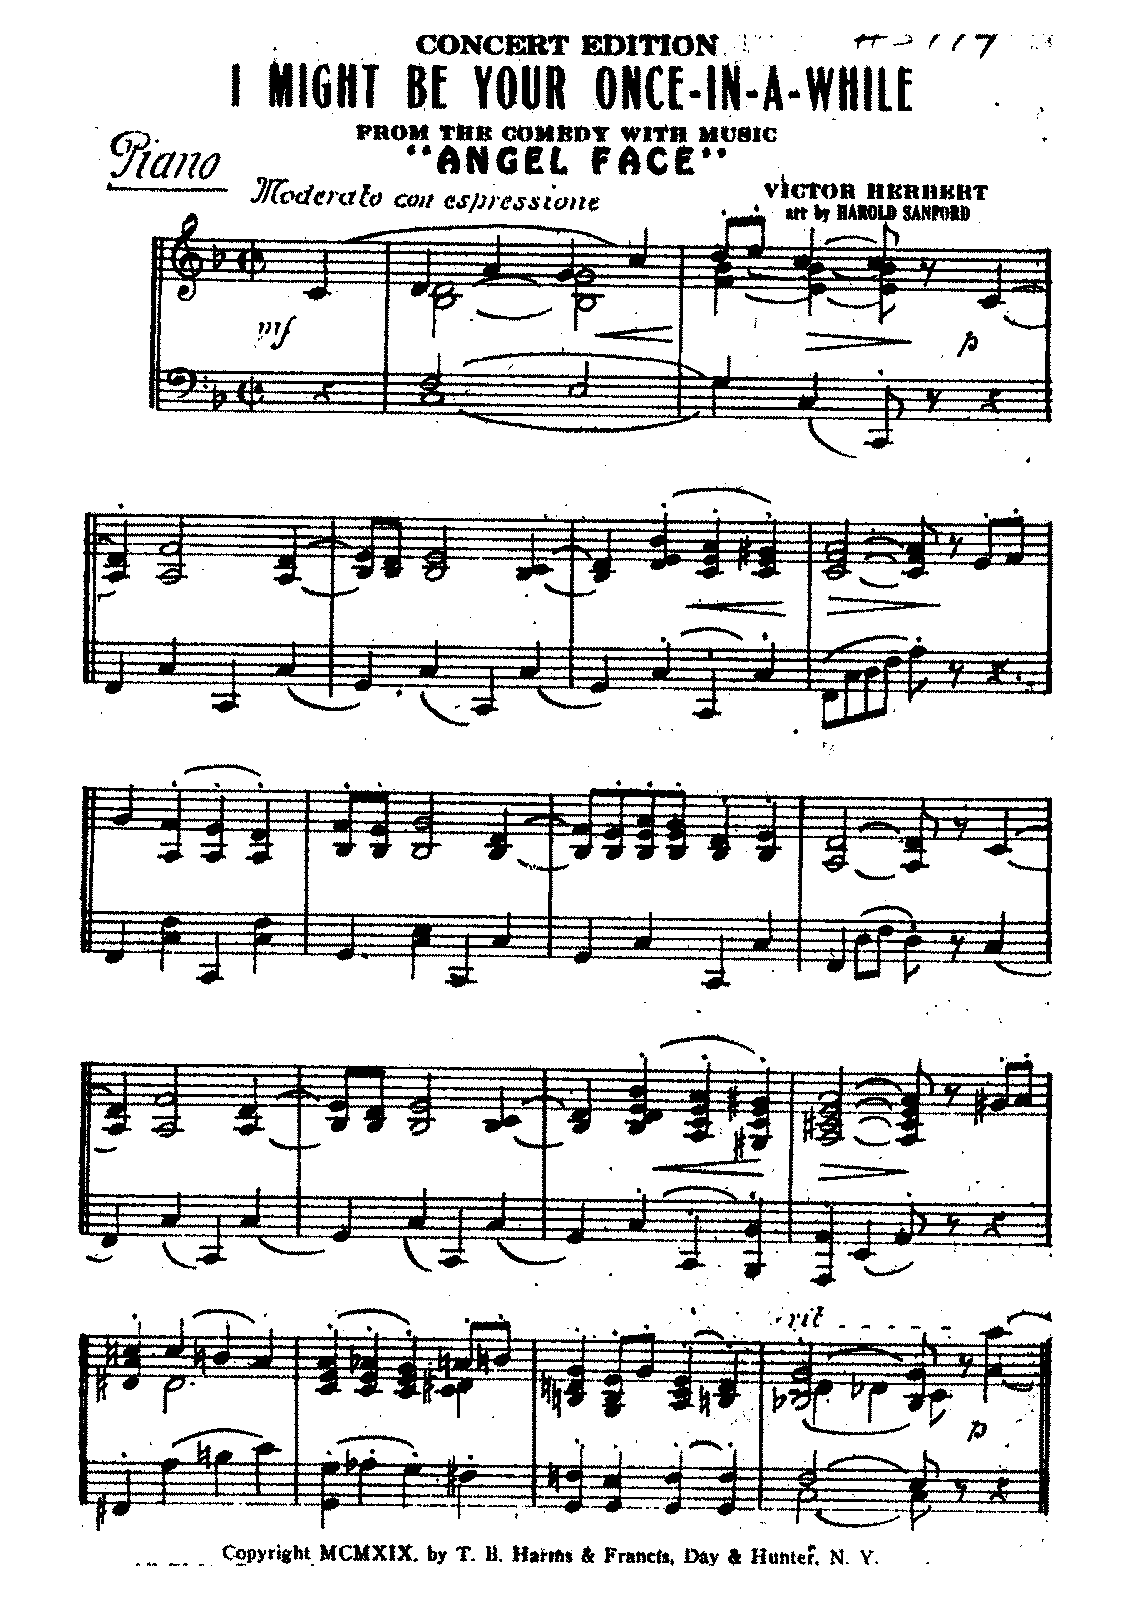 PMLP154153-Herbert-V arr Sanford Angel face-I Might be Piano.pdf